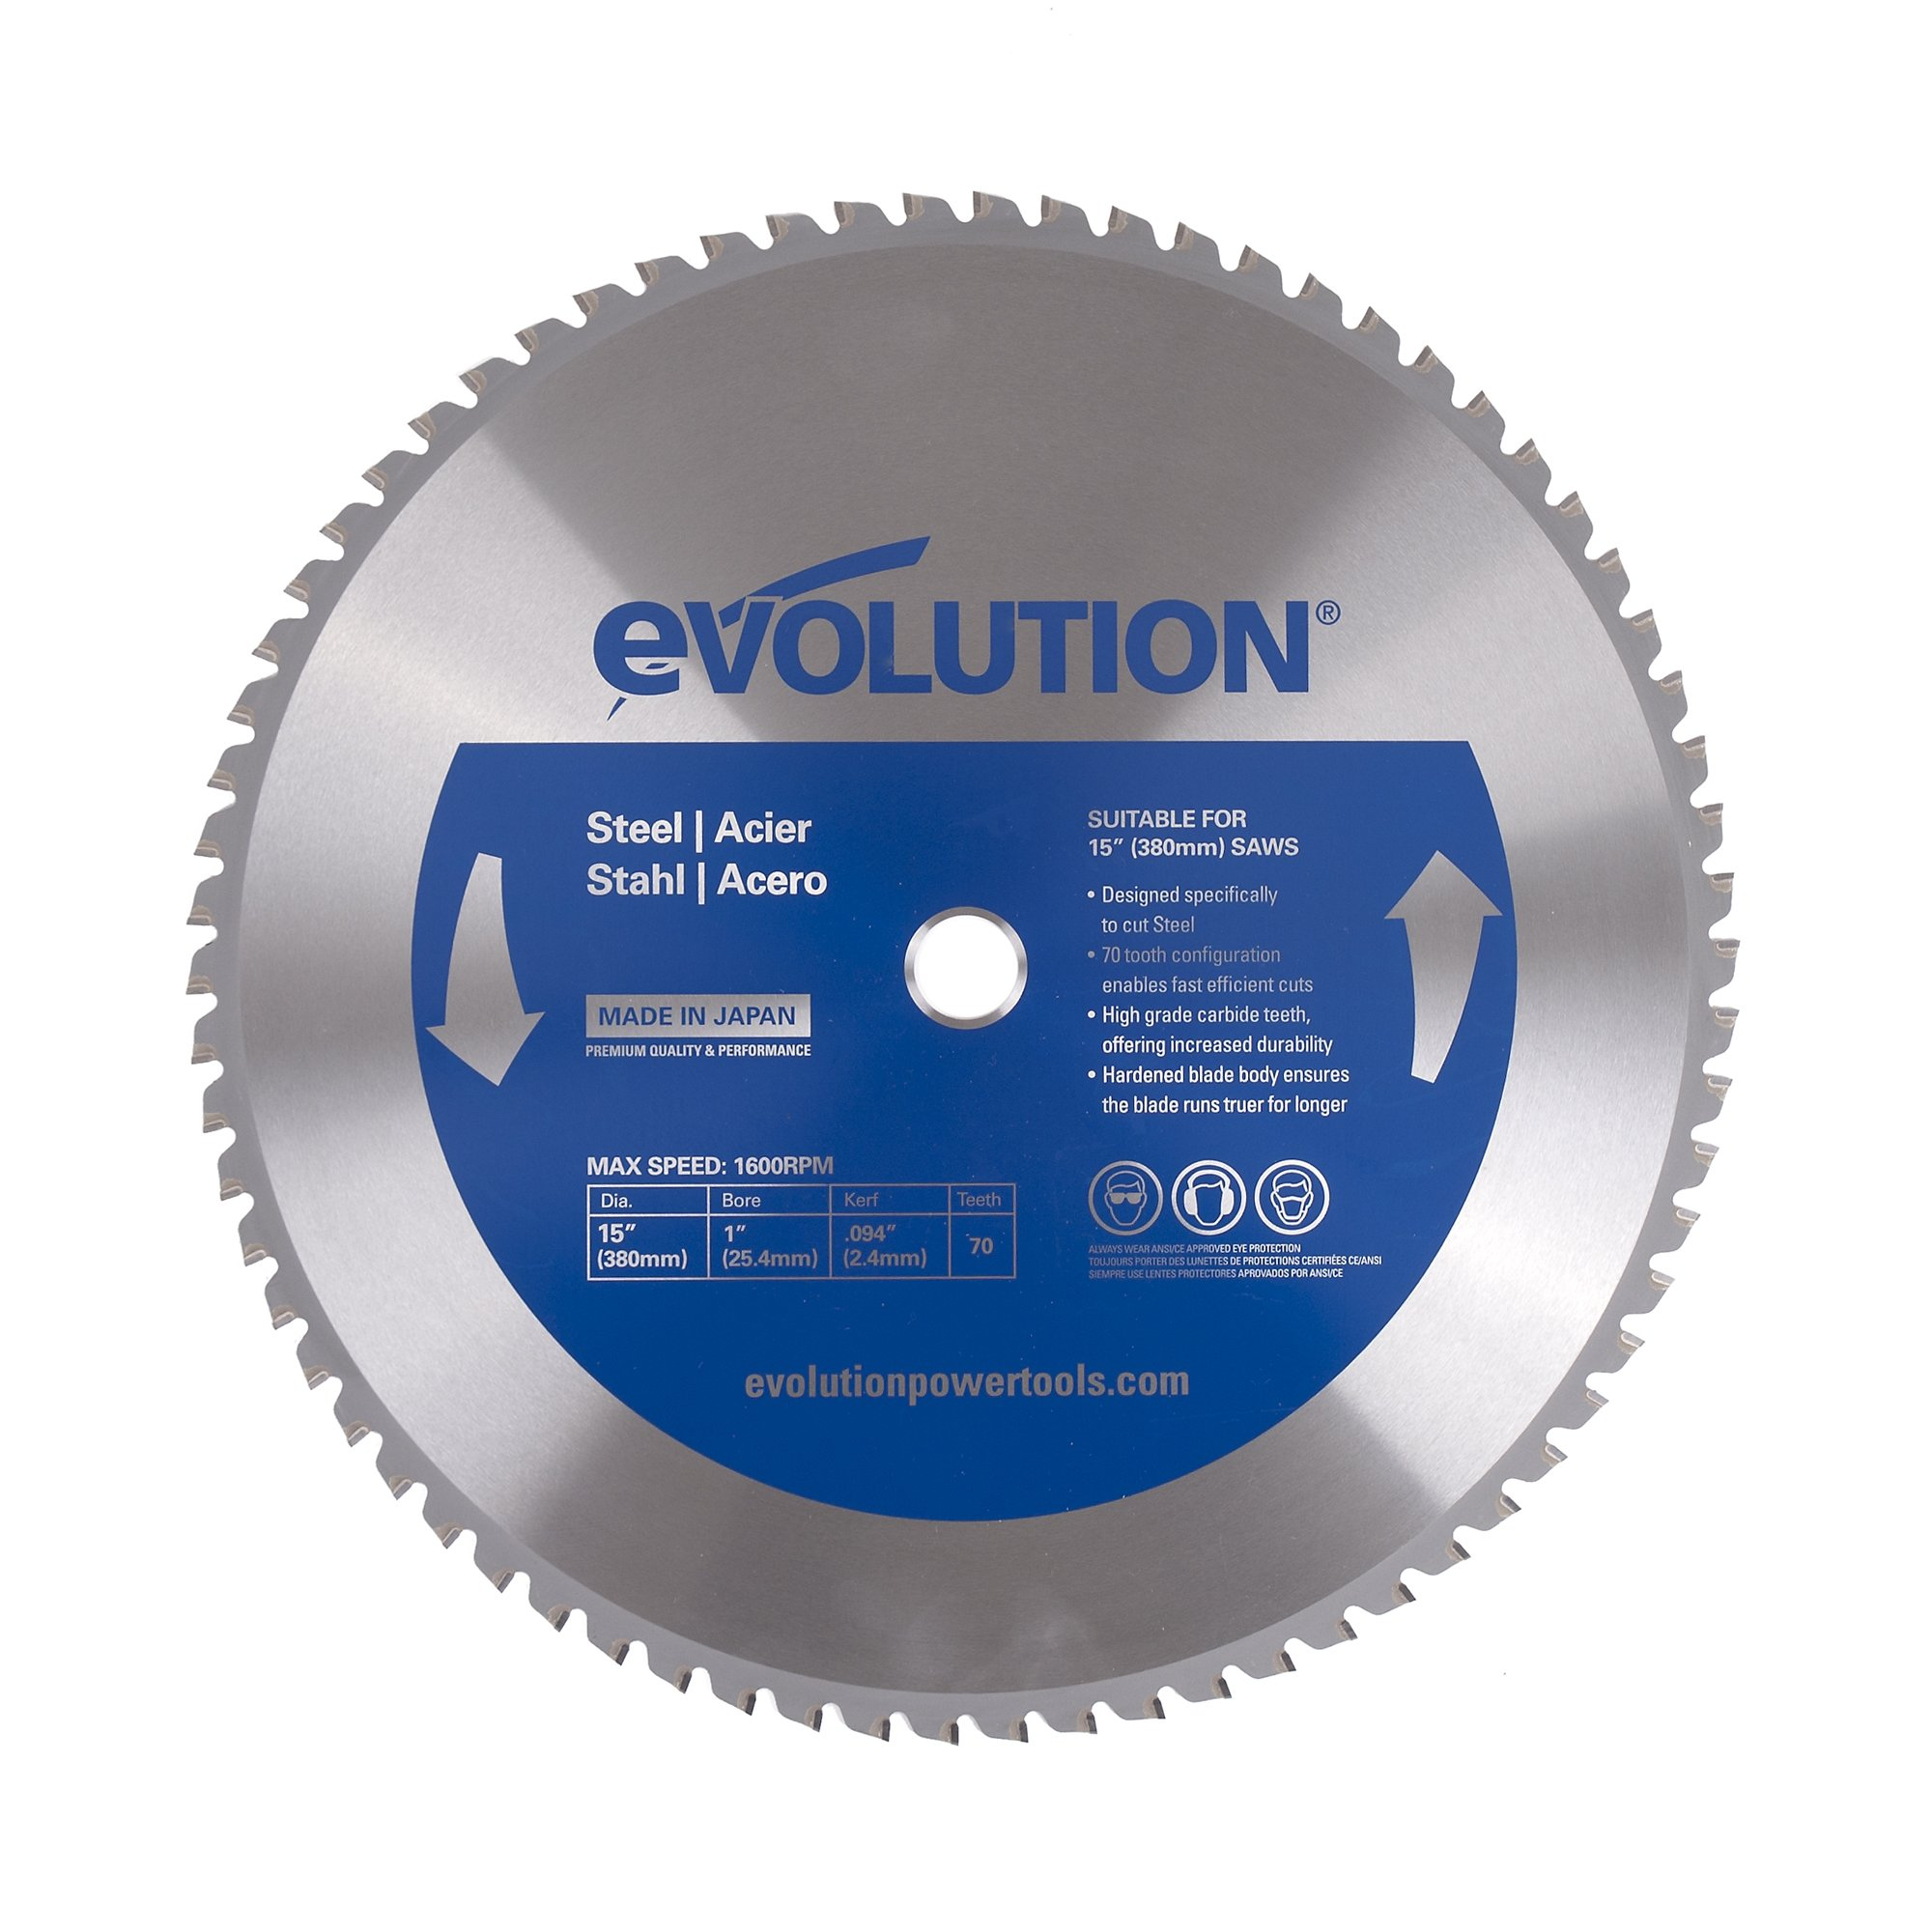 Evolution Power Tools 15BLADEST Steel Cutting Saw Blade, 15-Inch x 70-Tooth by Evolution Power Tools (Image #1)